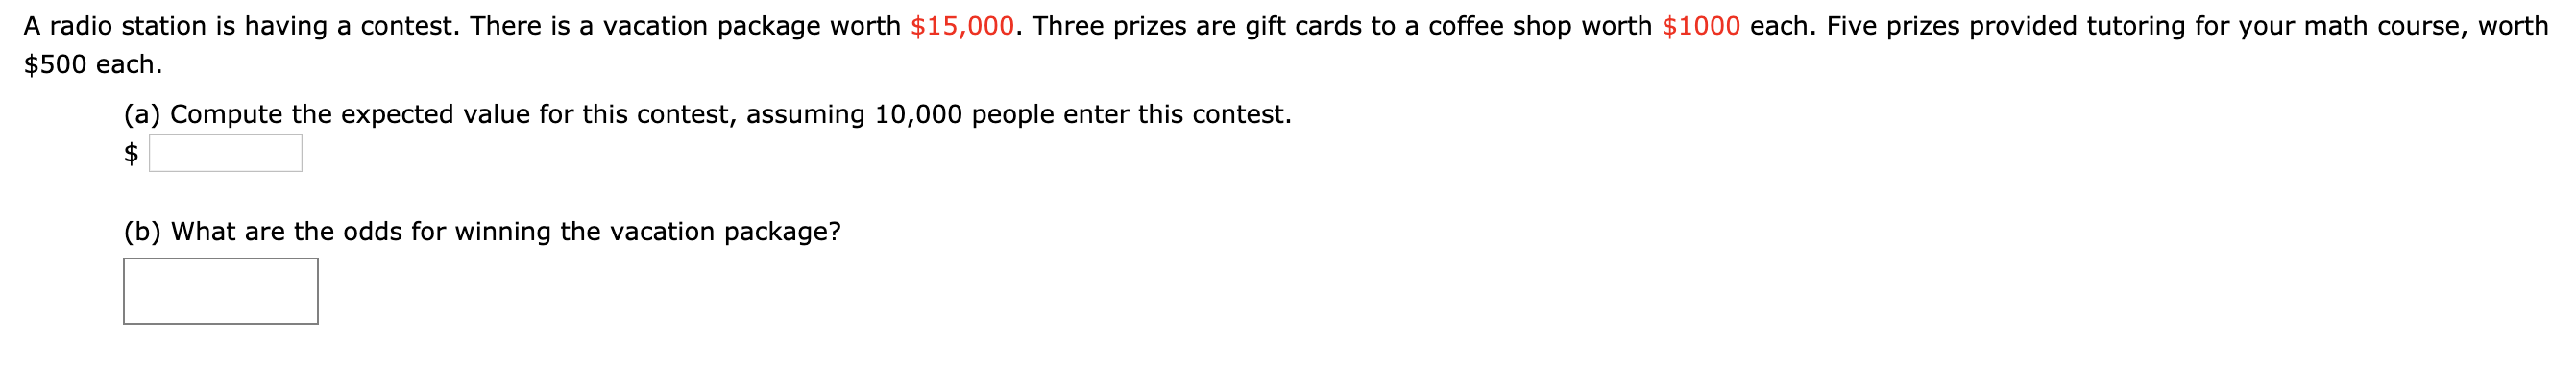 A radio station is having a contest. There is a vacation package worth $15,000. Three prizes are gift cards to a coffee shop worth $1000 each. Five prizes provided tutoring for your math course, worth $500 each. (a) Compute the expected value for this contest, assuming 10,000 people enter this contest. (b) What are the odds for winning the vacation package?